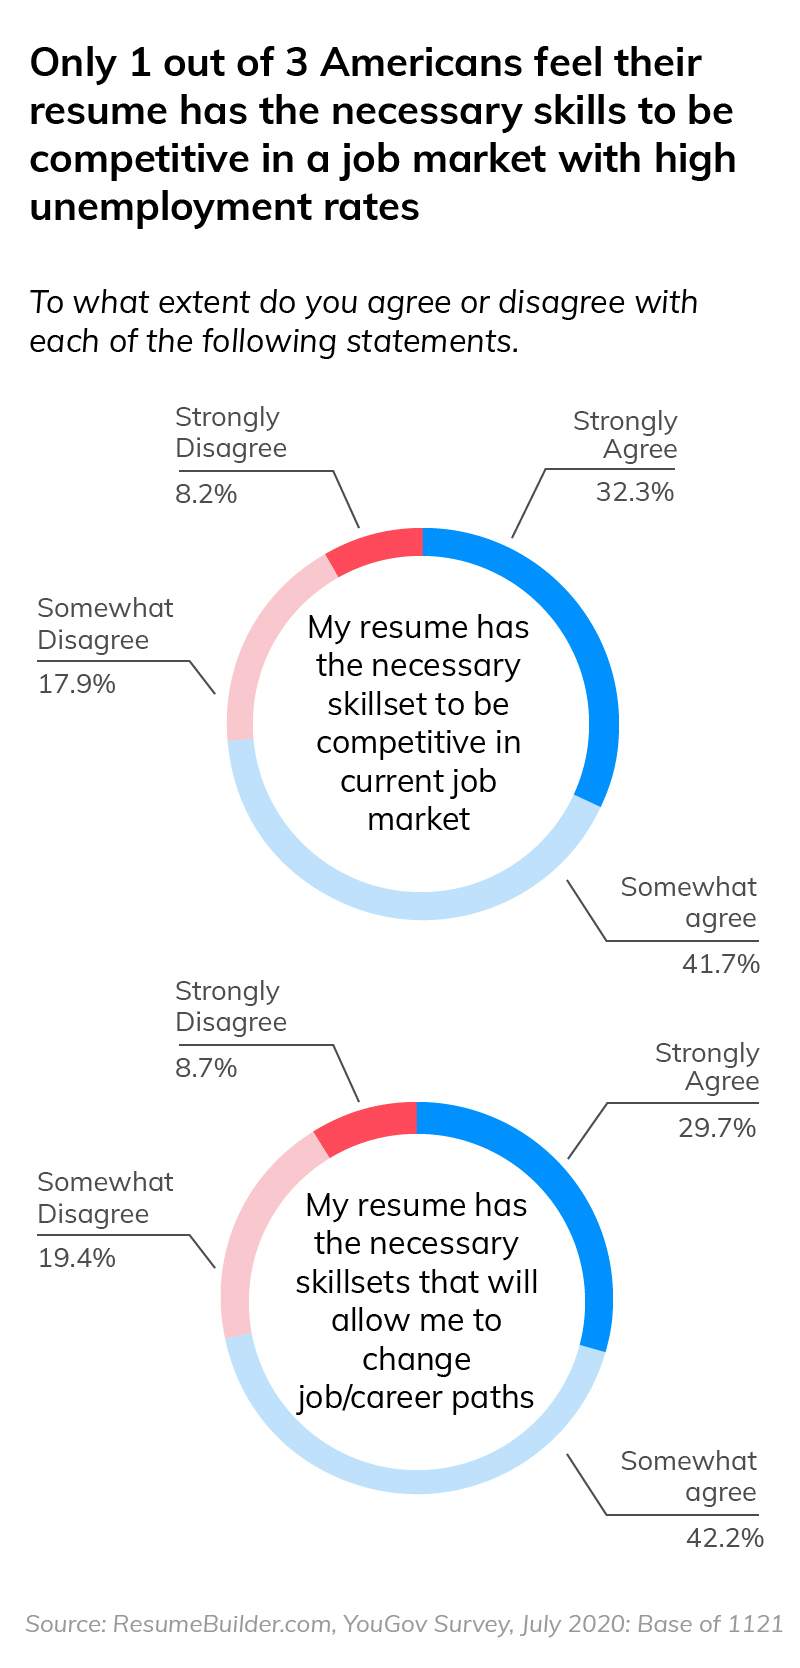 resume has skills to be competitive